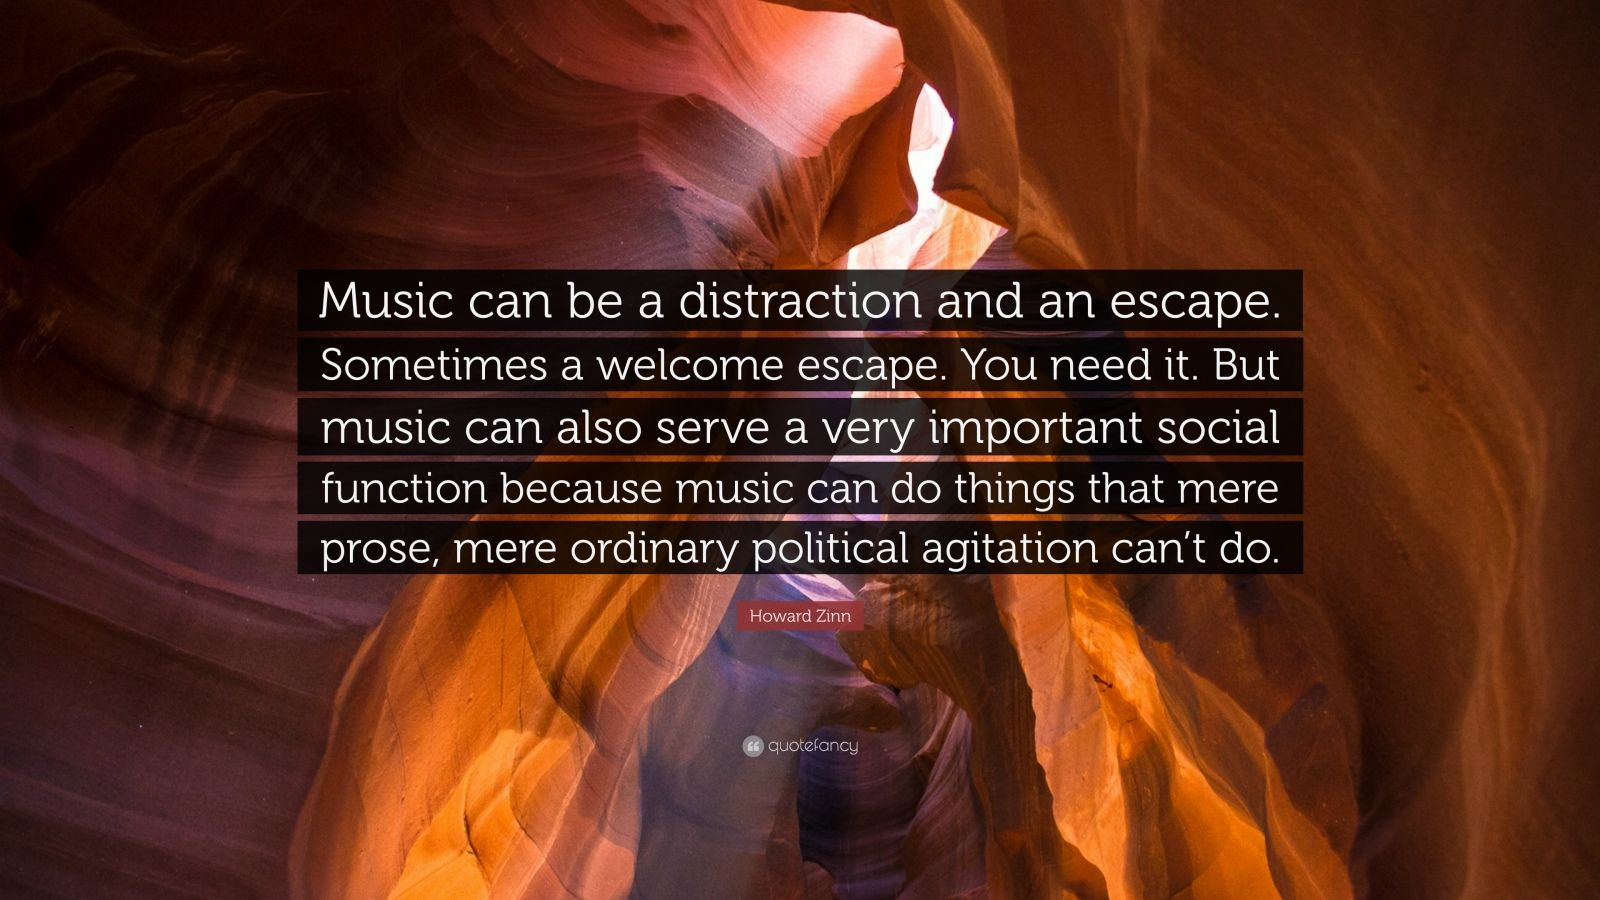 """Howard Zinn Quote: """"Music can be a distraction and an escape. Sometimes a welcome escape. You need it. But music can also serve a very important social function because music can do things that mere prose, mere ordinary political agitation can't do."""""""